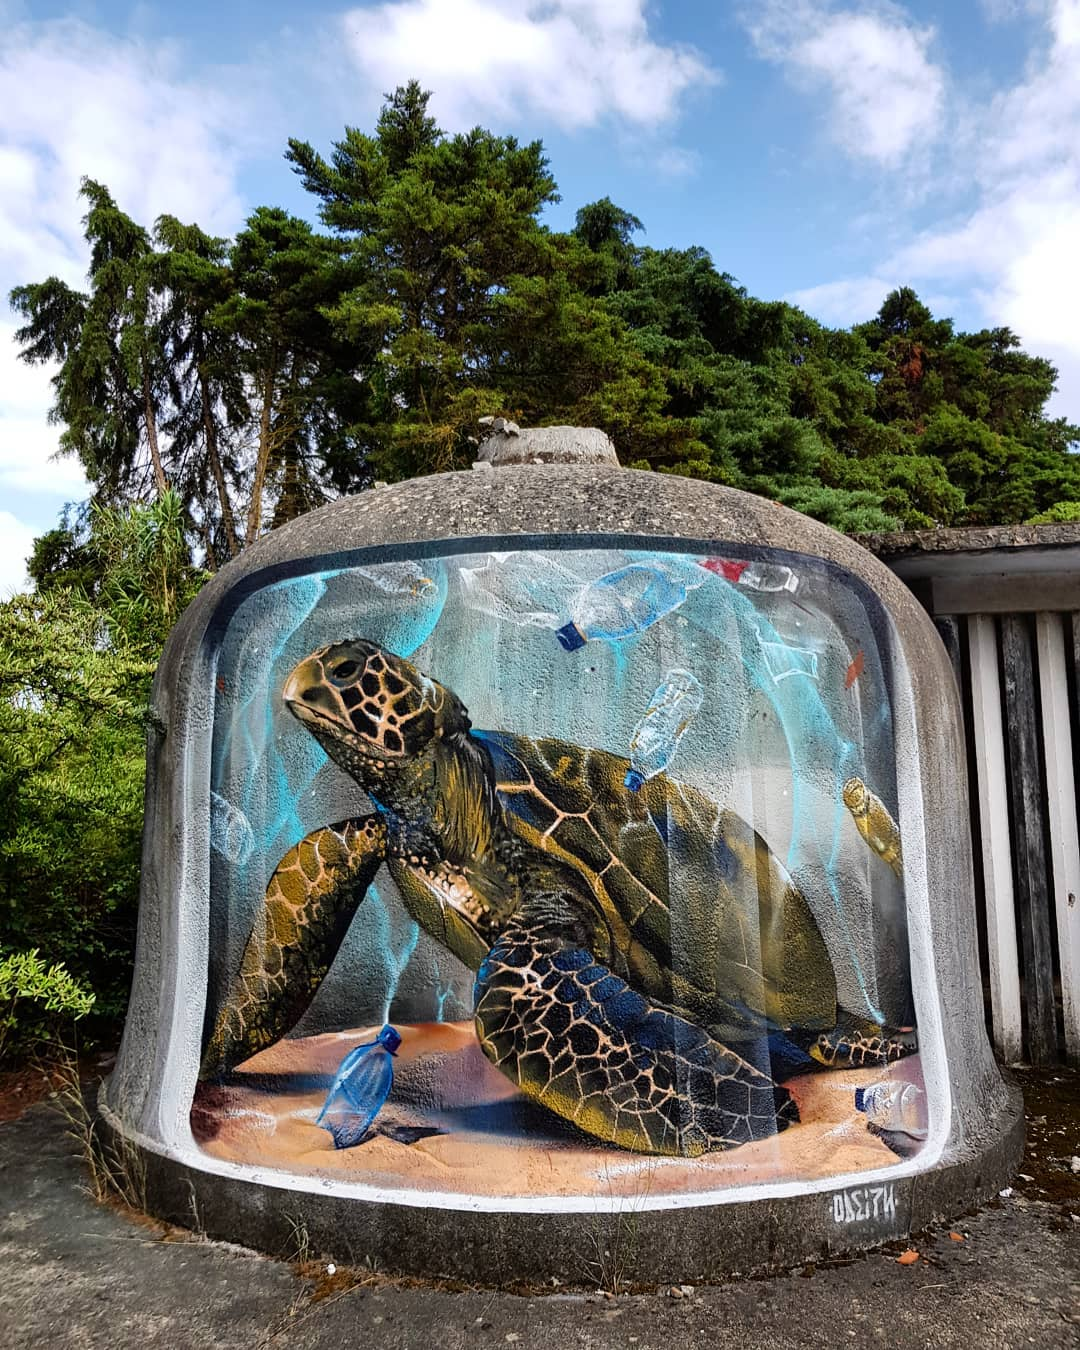 3d street art turtle by odeith